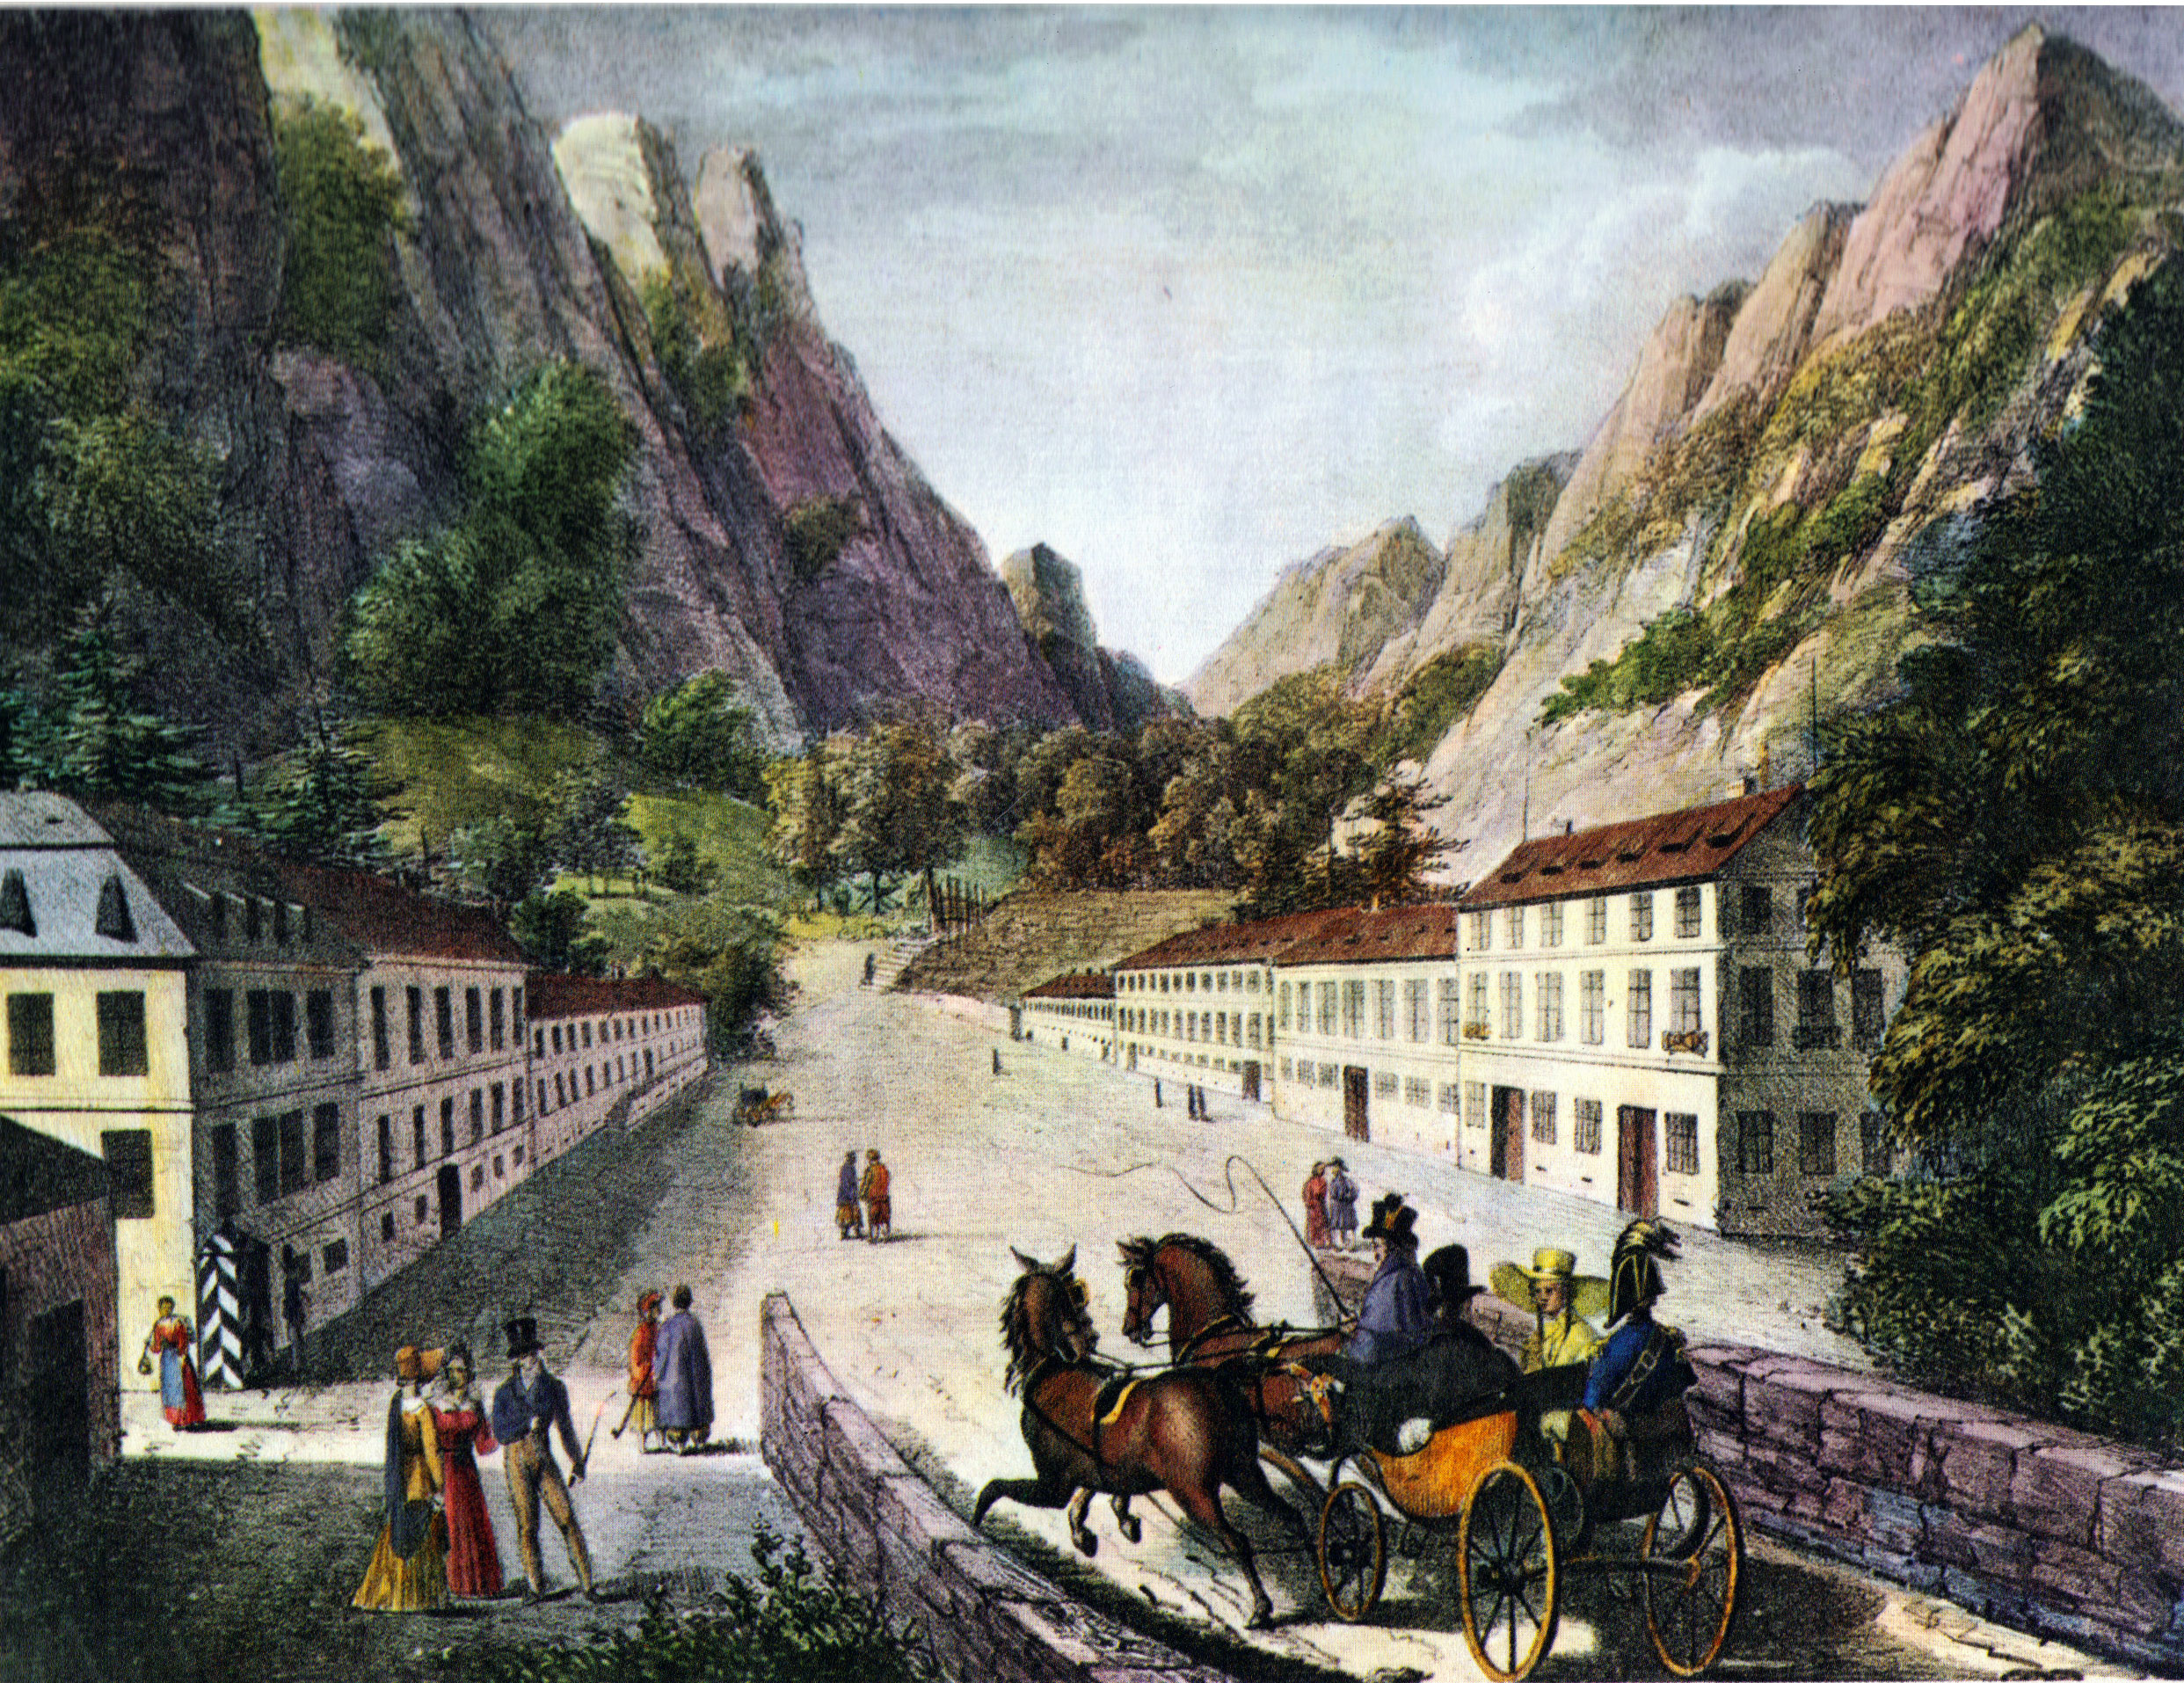 Sursa/source: wikipedia; https://commons.wikimedia.org/wiki/File%3ABaile_Herculane_road_1824.jpg